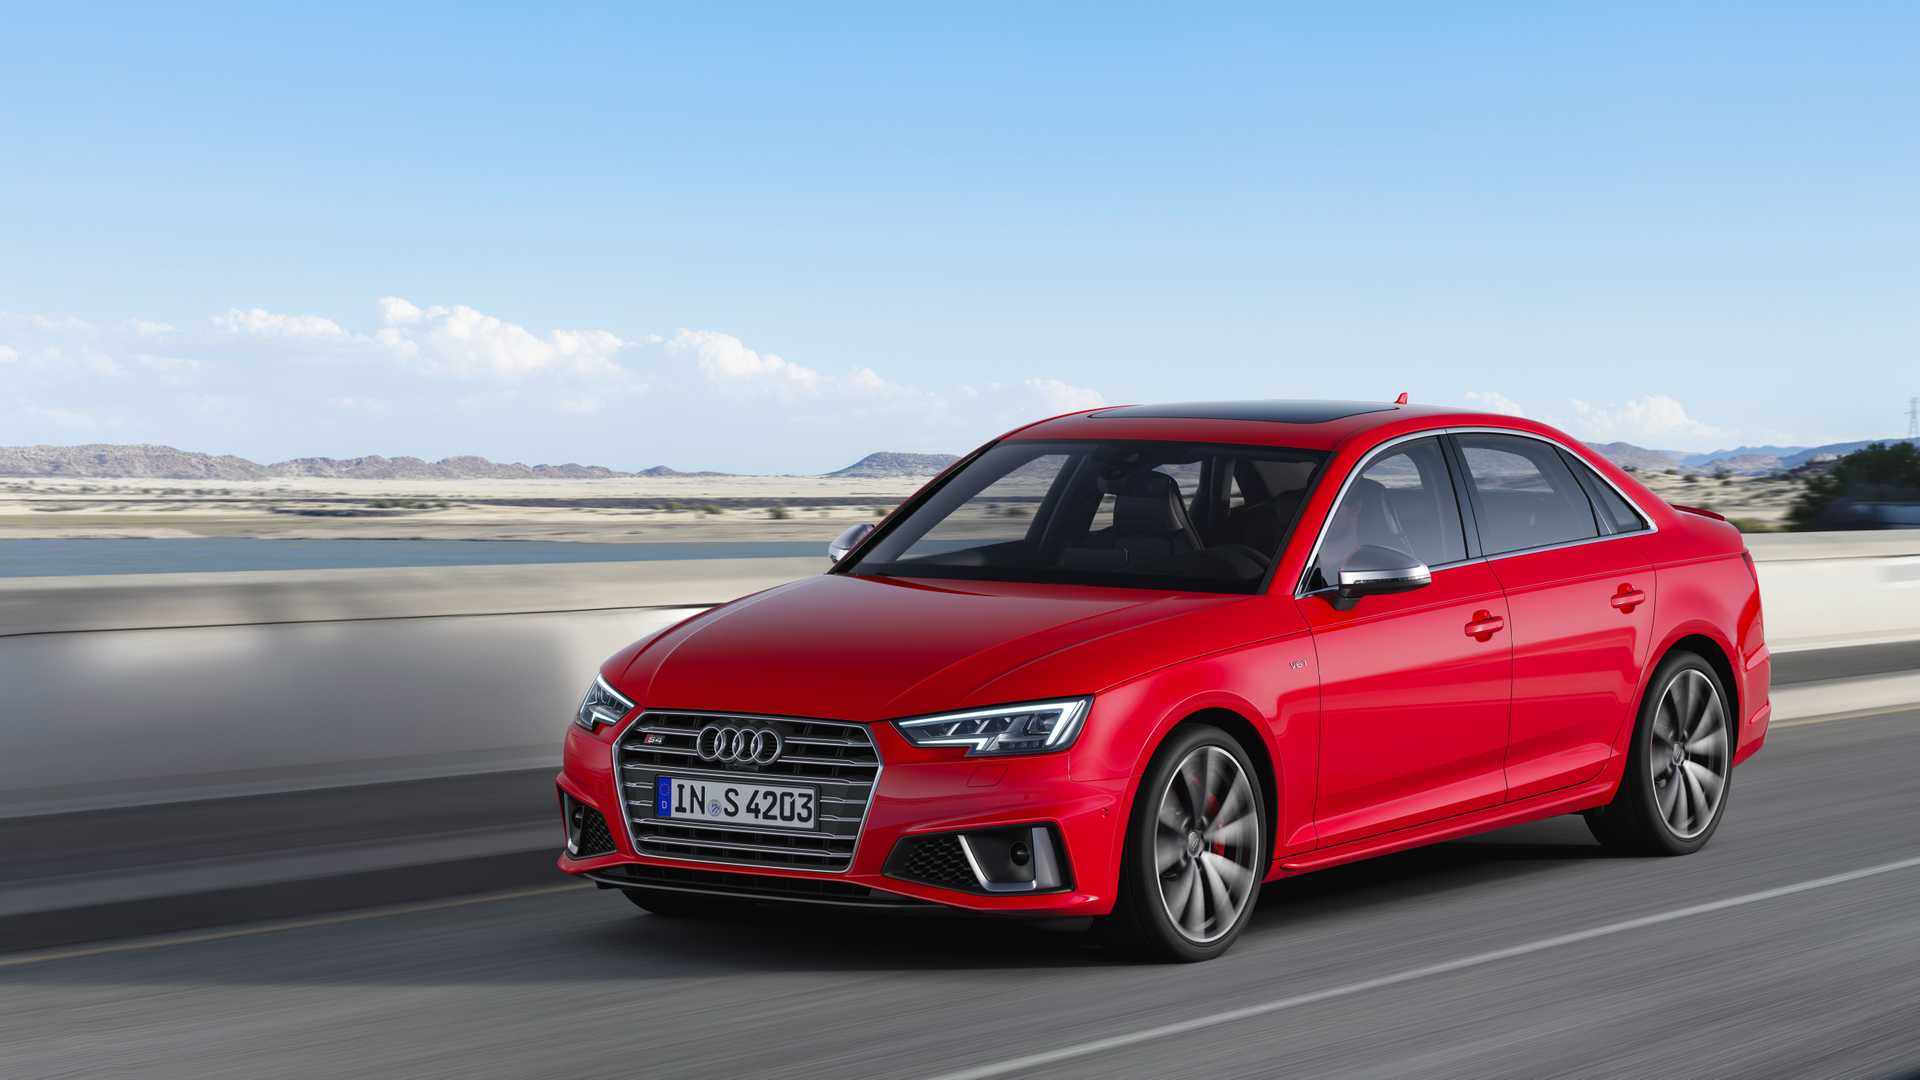 2019 Audi S4 Sedan TDI (Color: Misano Red) Front Three-Quarter Wallpapers (1)